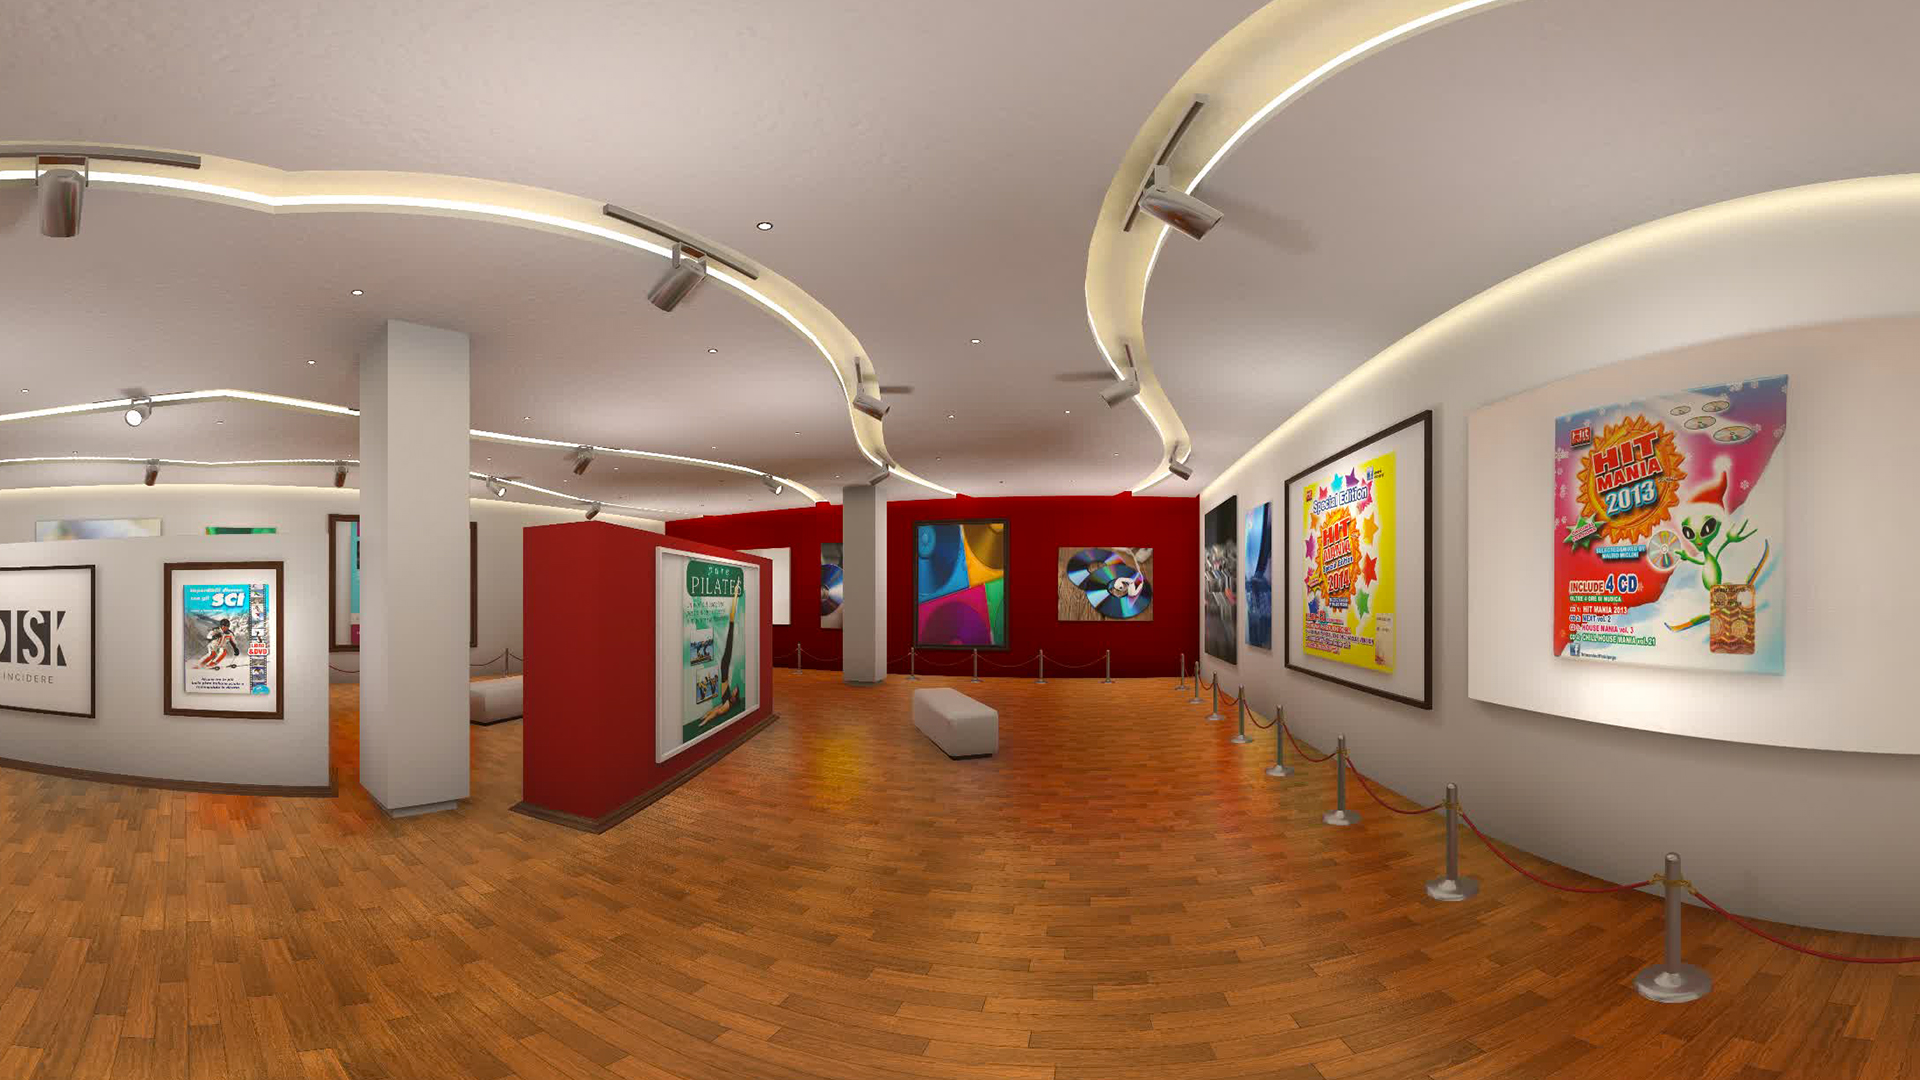 virtual tour video 360 ambiente museo con coperniko